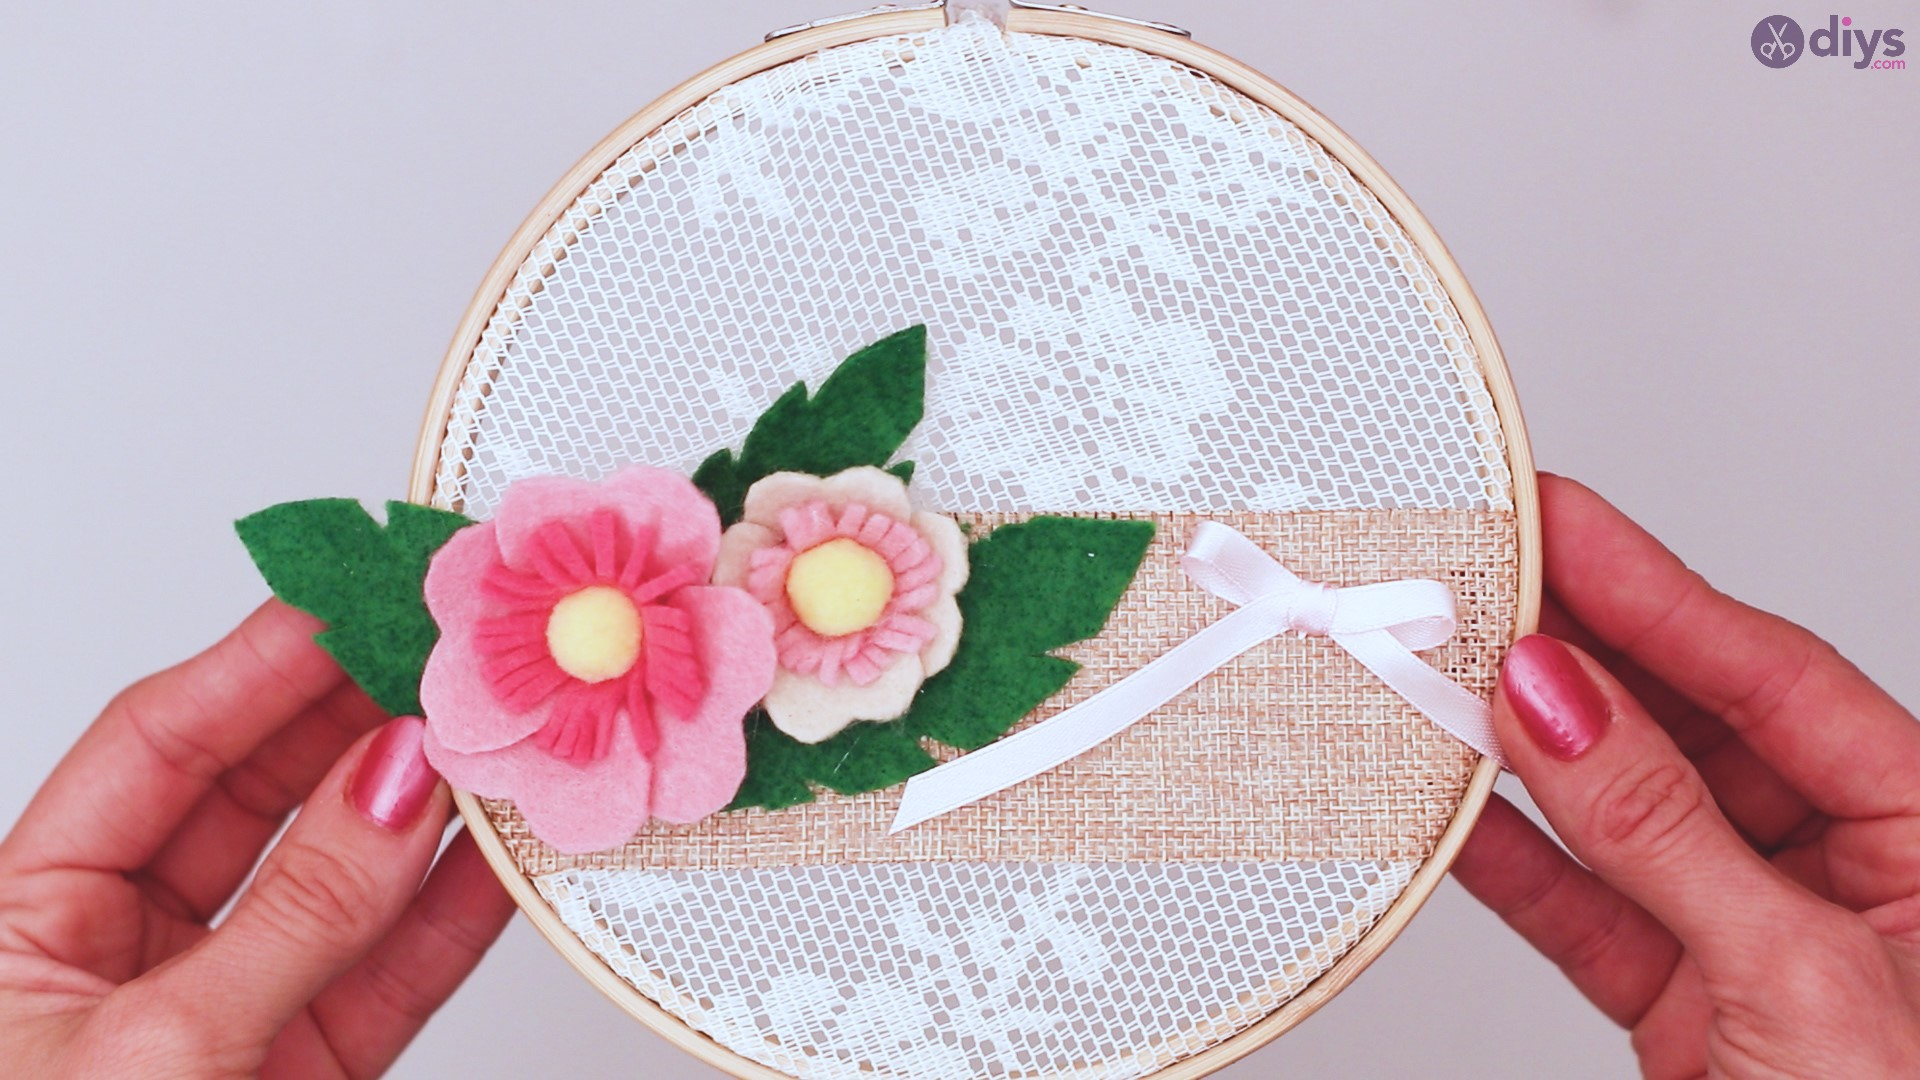 Diy embroidery hoop wall decor tutorial step by step (71)